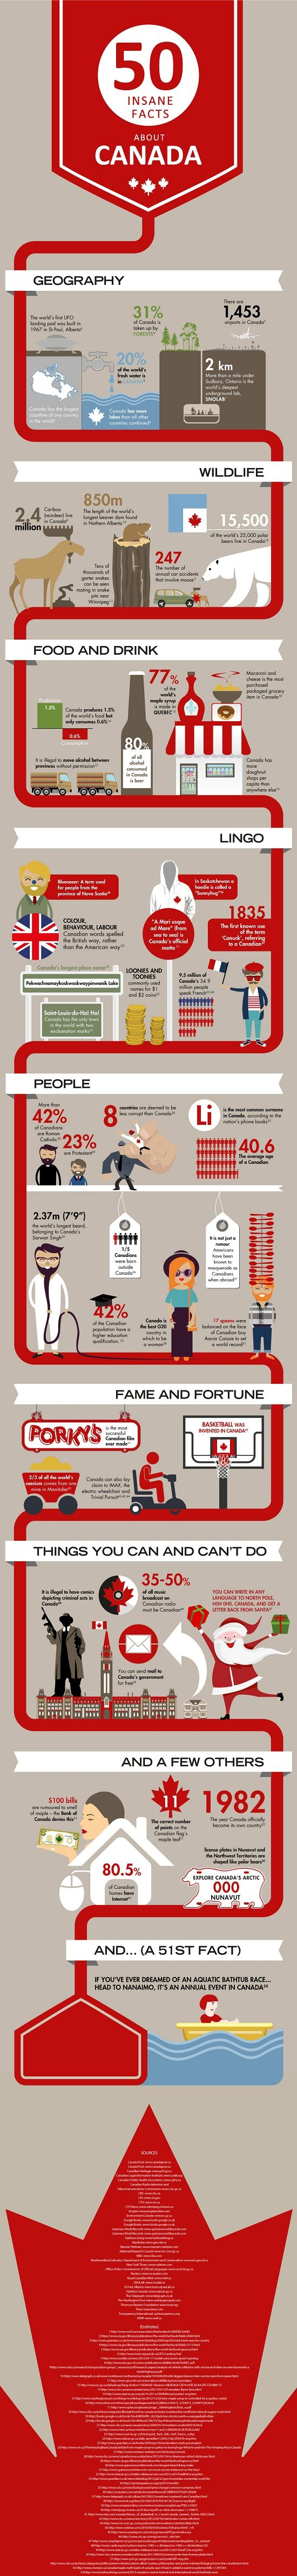 50 Insane Facts about Canada [Infographic] image